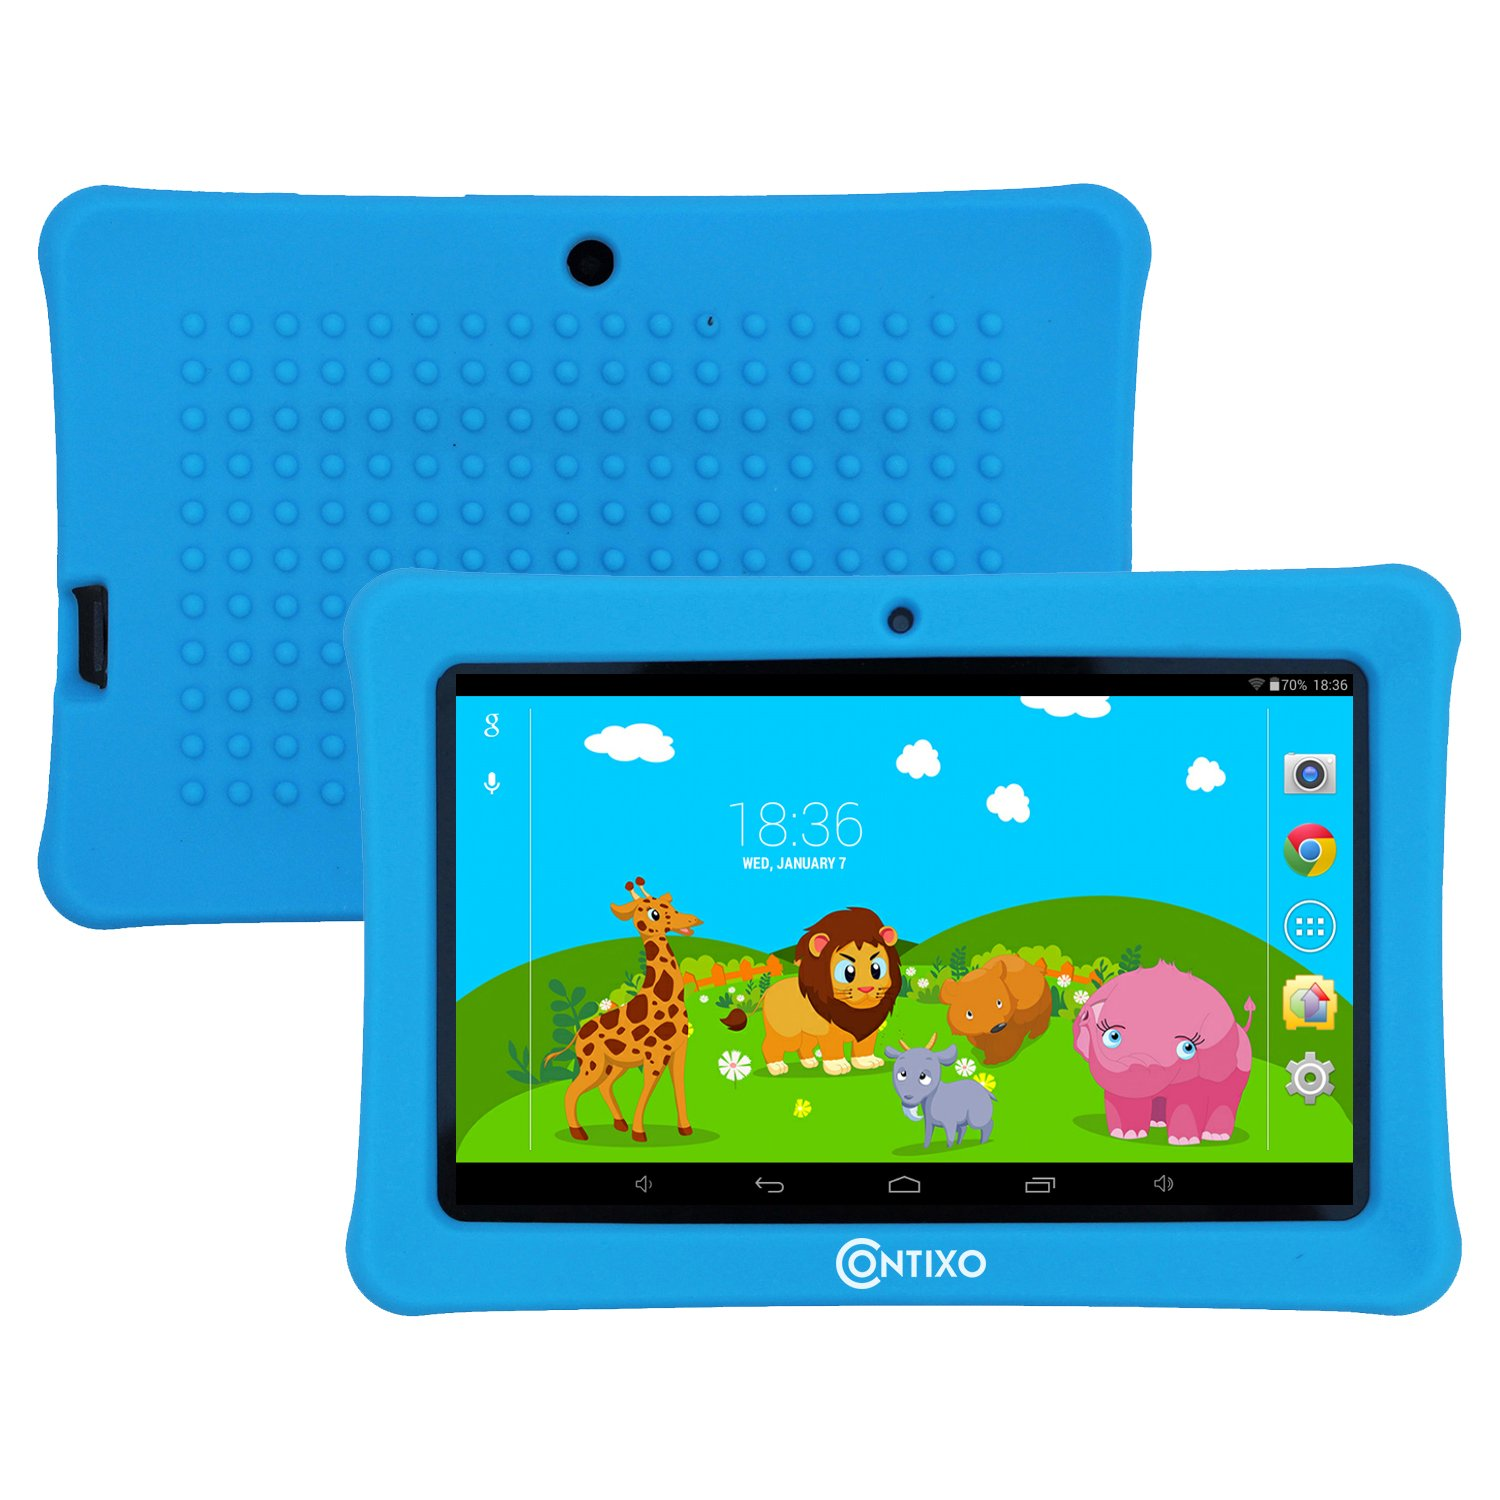 HOLIDAY SPECIAL! Contixo Kids Safe 7'' Tablet 8GB, Bluetooth, Wi-Fi, Cameras, 20+ Free Games, HD Edition w/ Kids-Place Parental Control, Kid-Proof Case (Blue) - Best Gift For Christmas